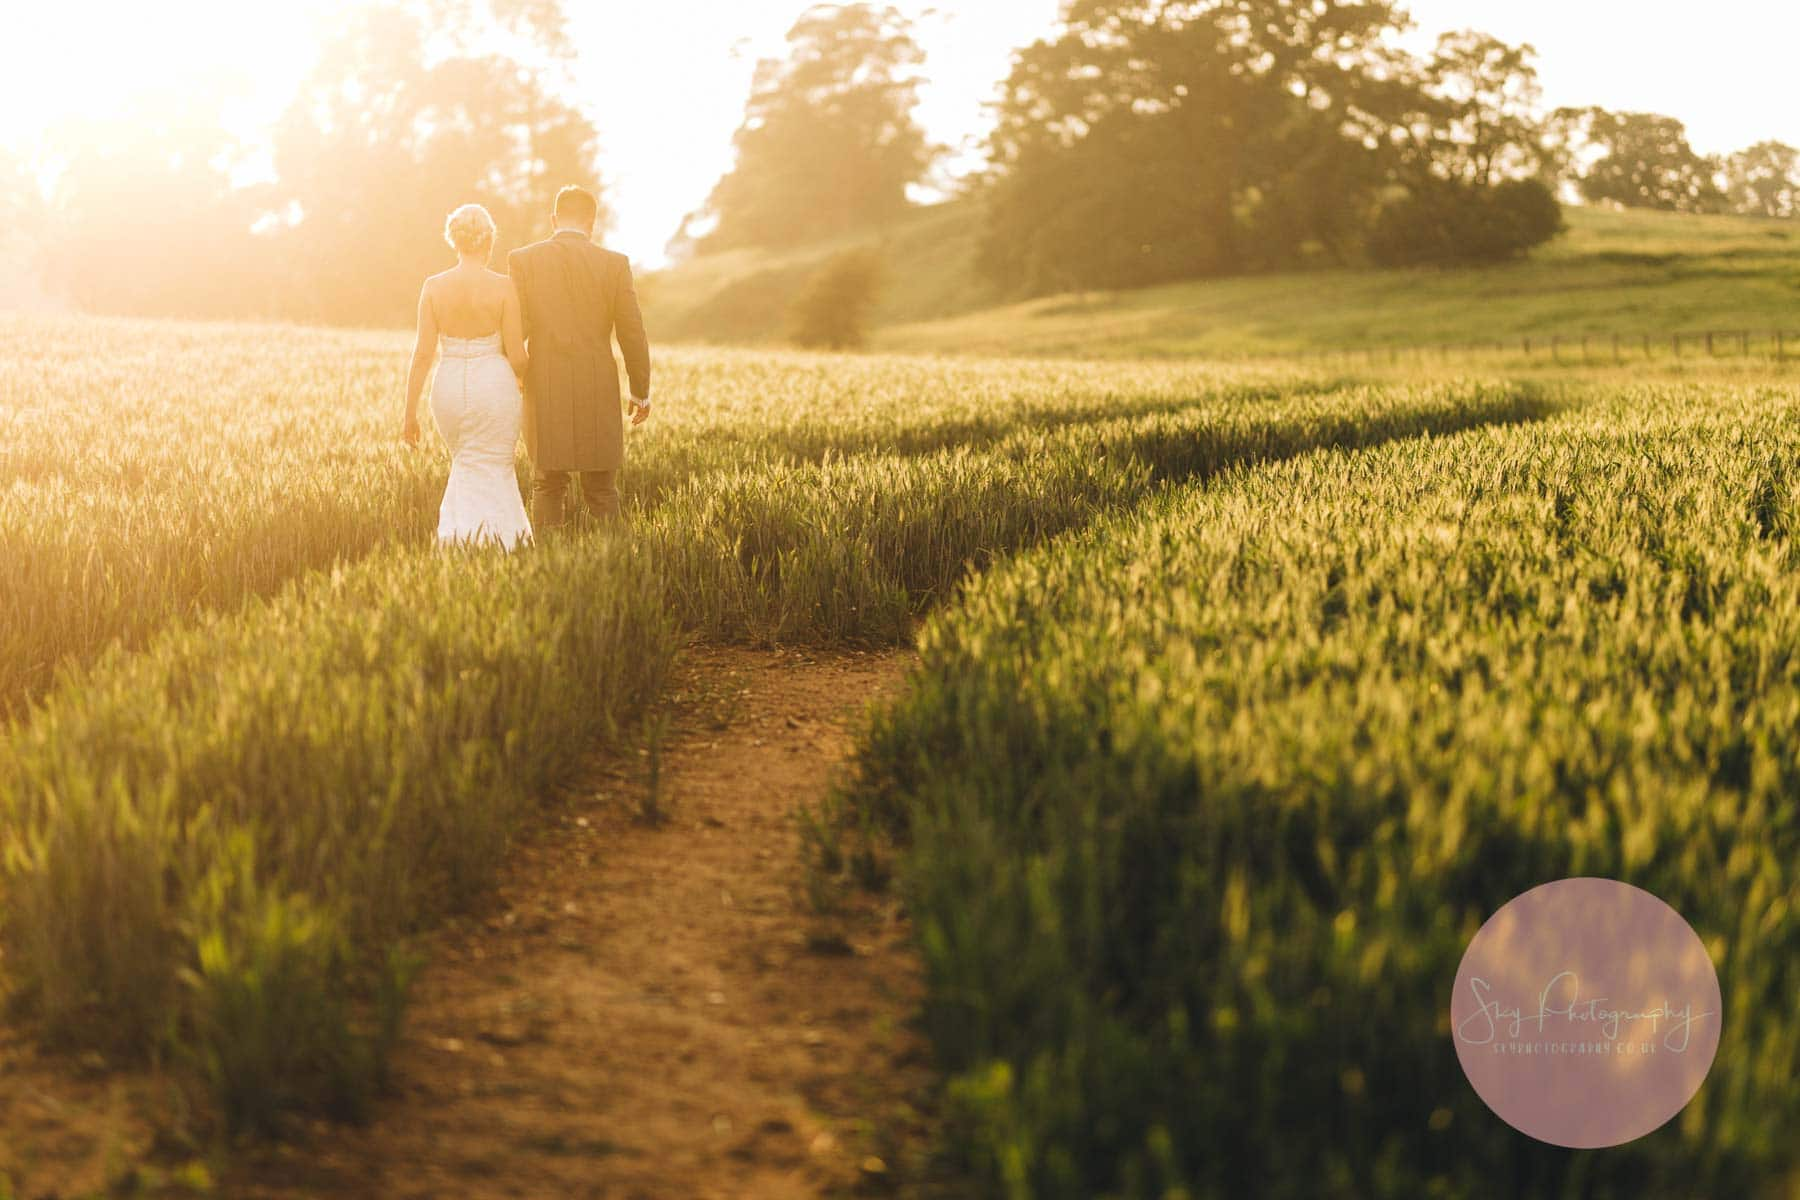 Golden hour wedding photography, walking through a corn field